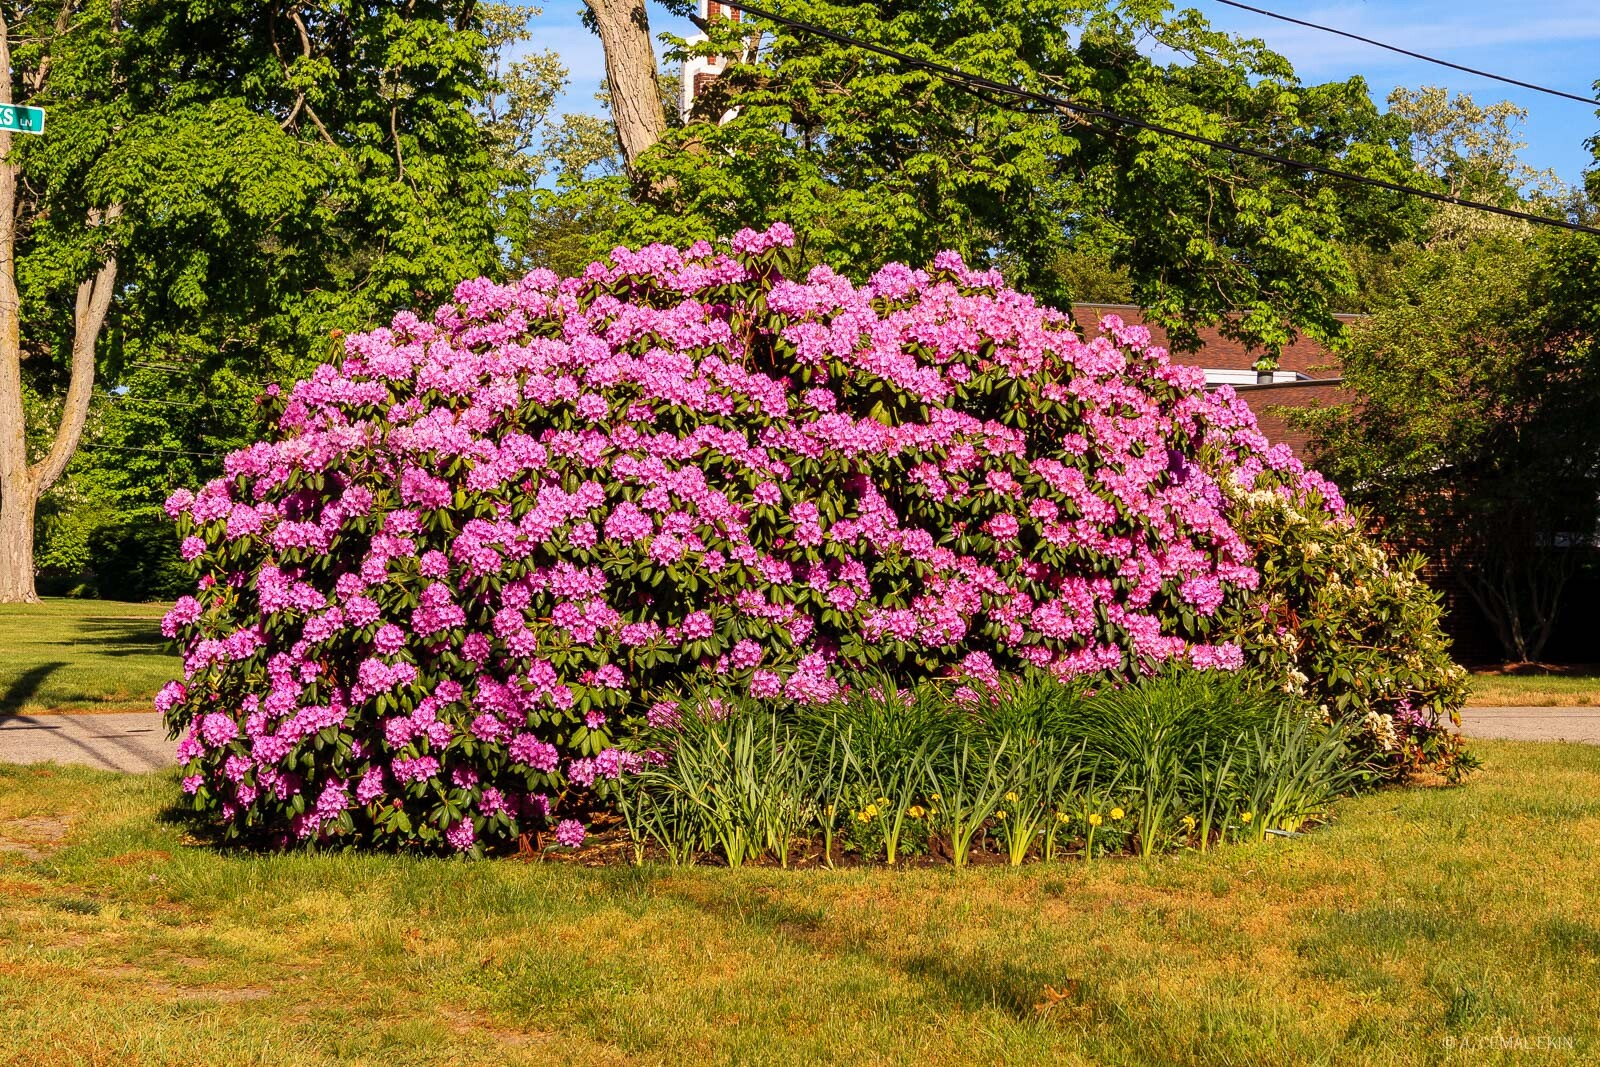 Rhododendron clump